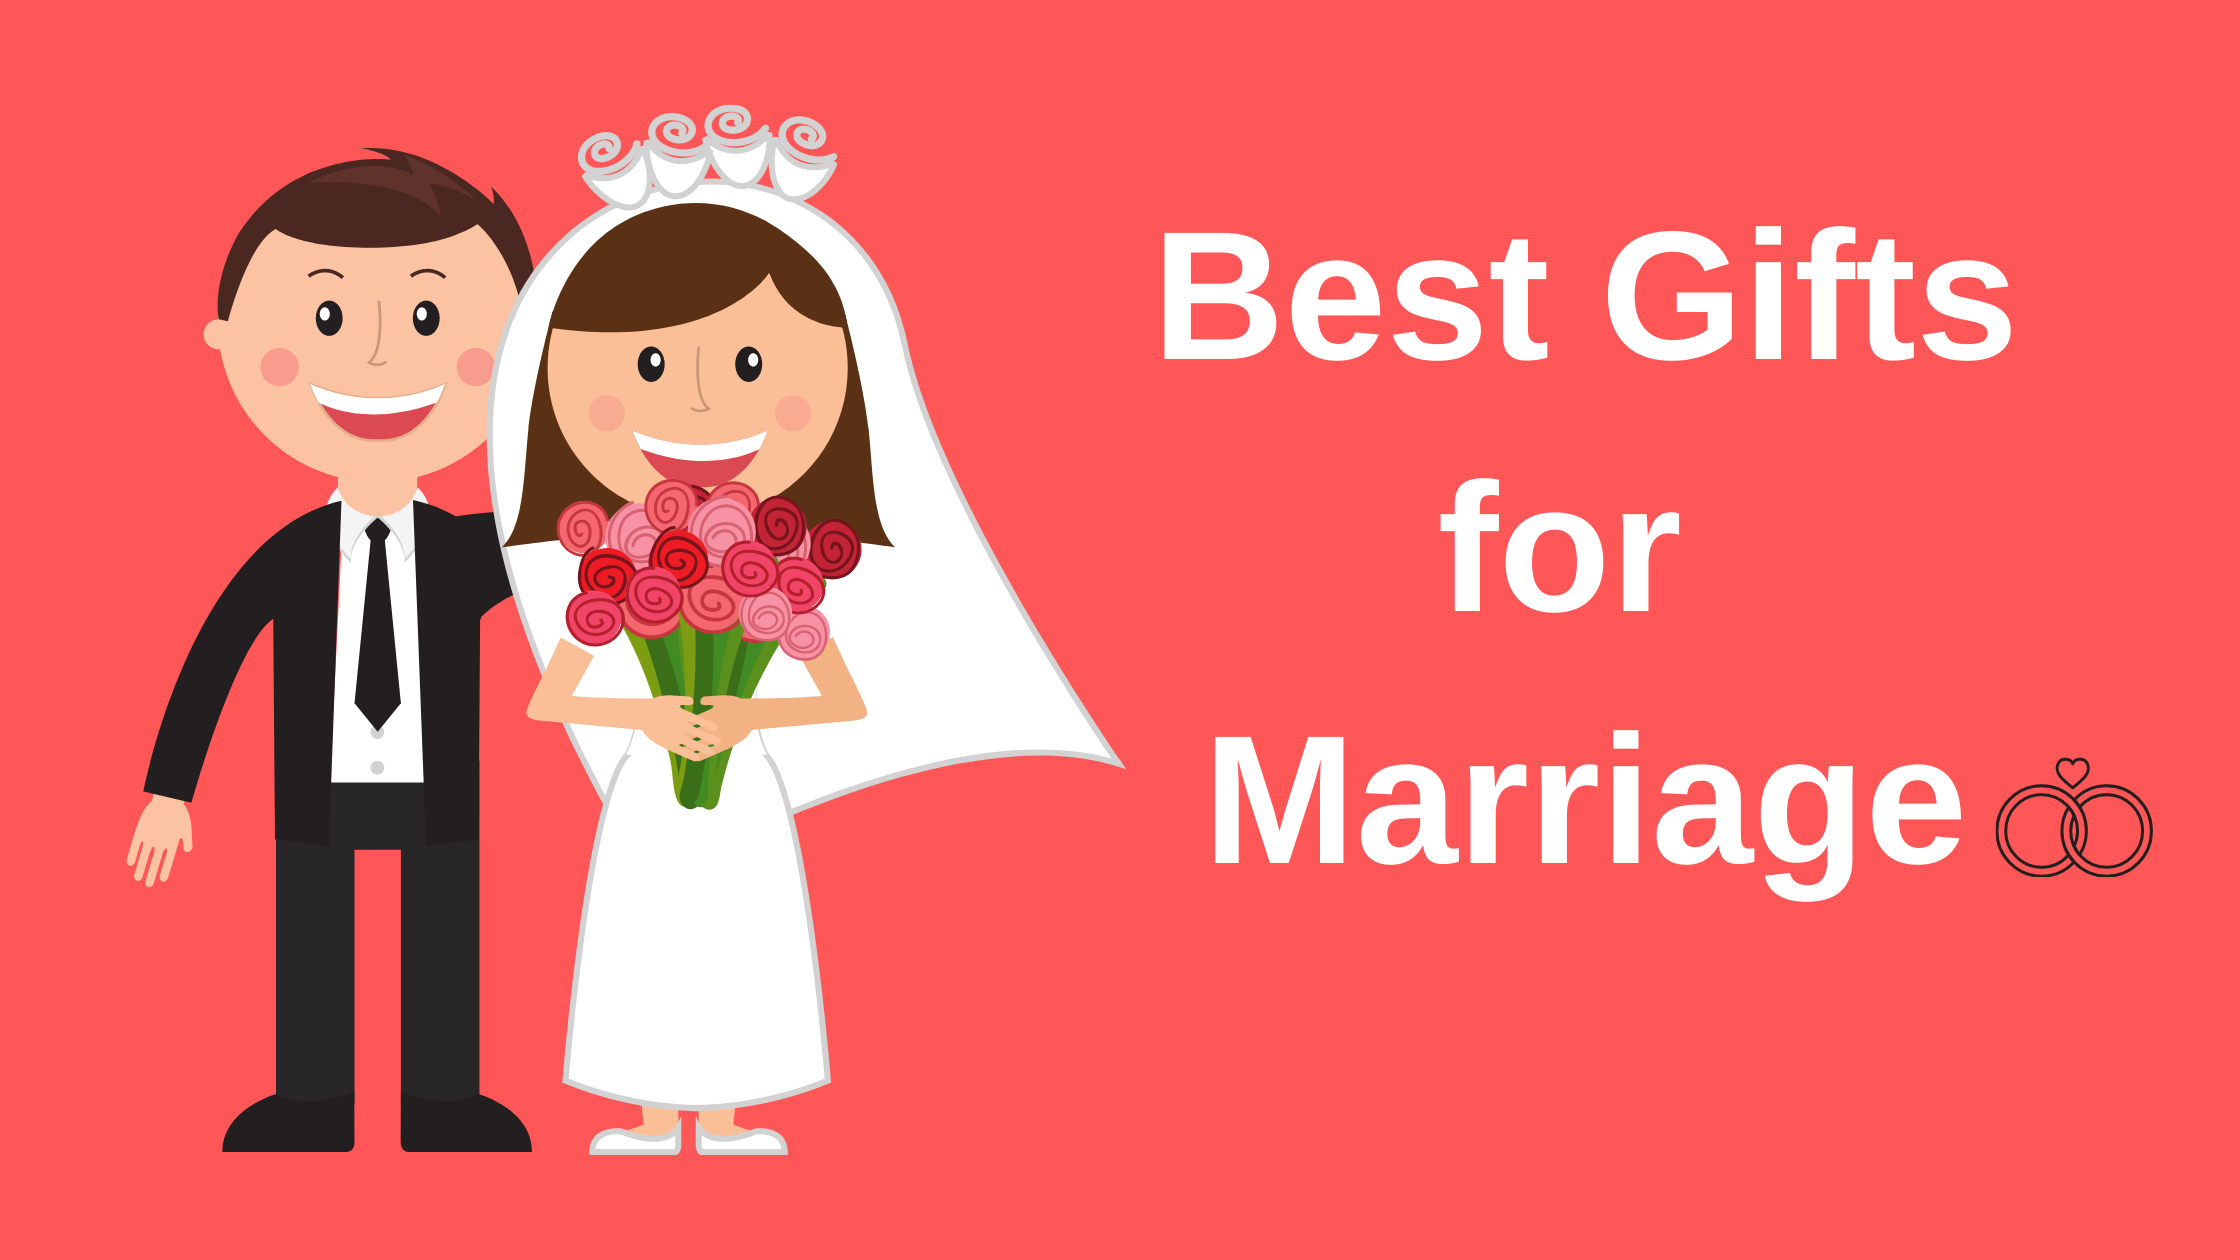 Best Gifts for Marriage